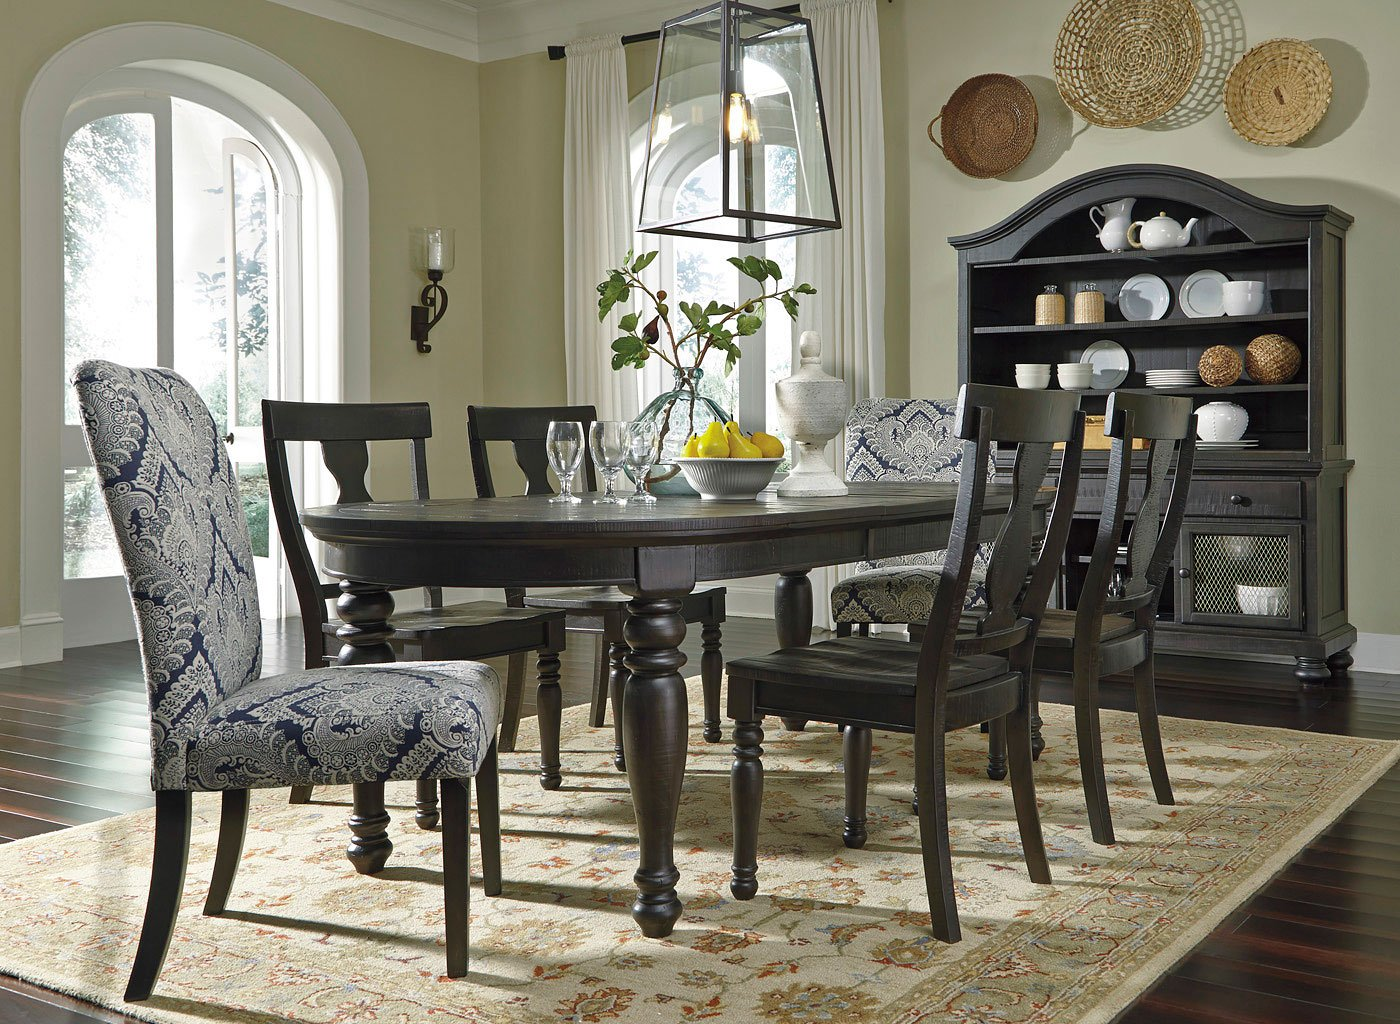 Sharlowe Dining Room Set W/ Upholstered Chairs